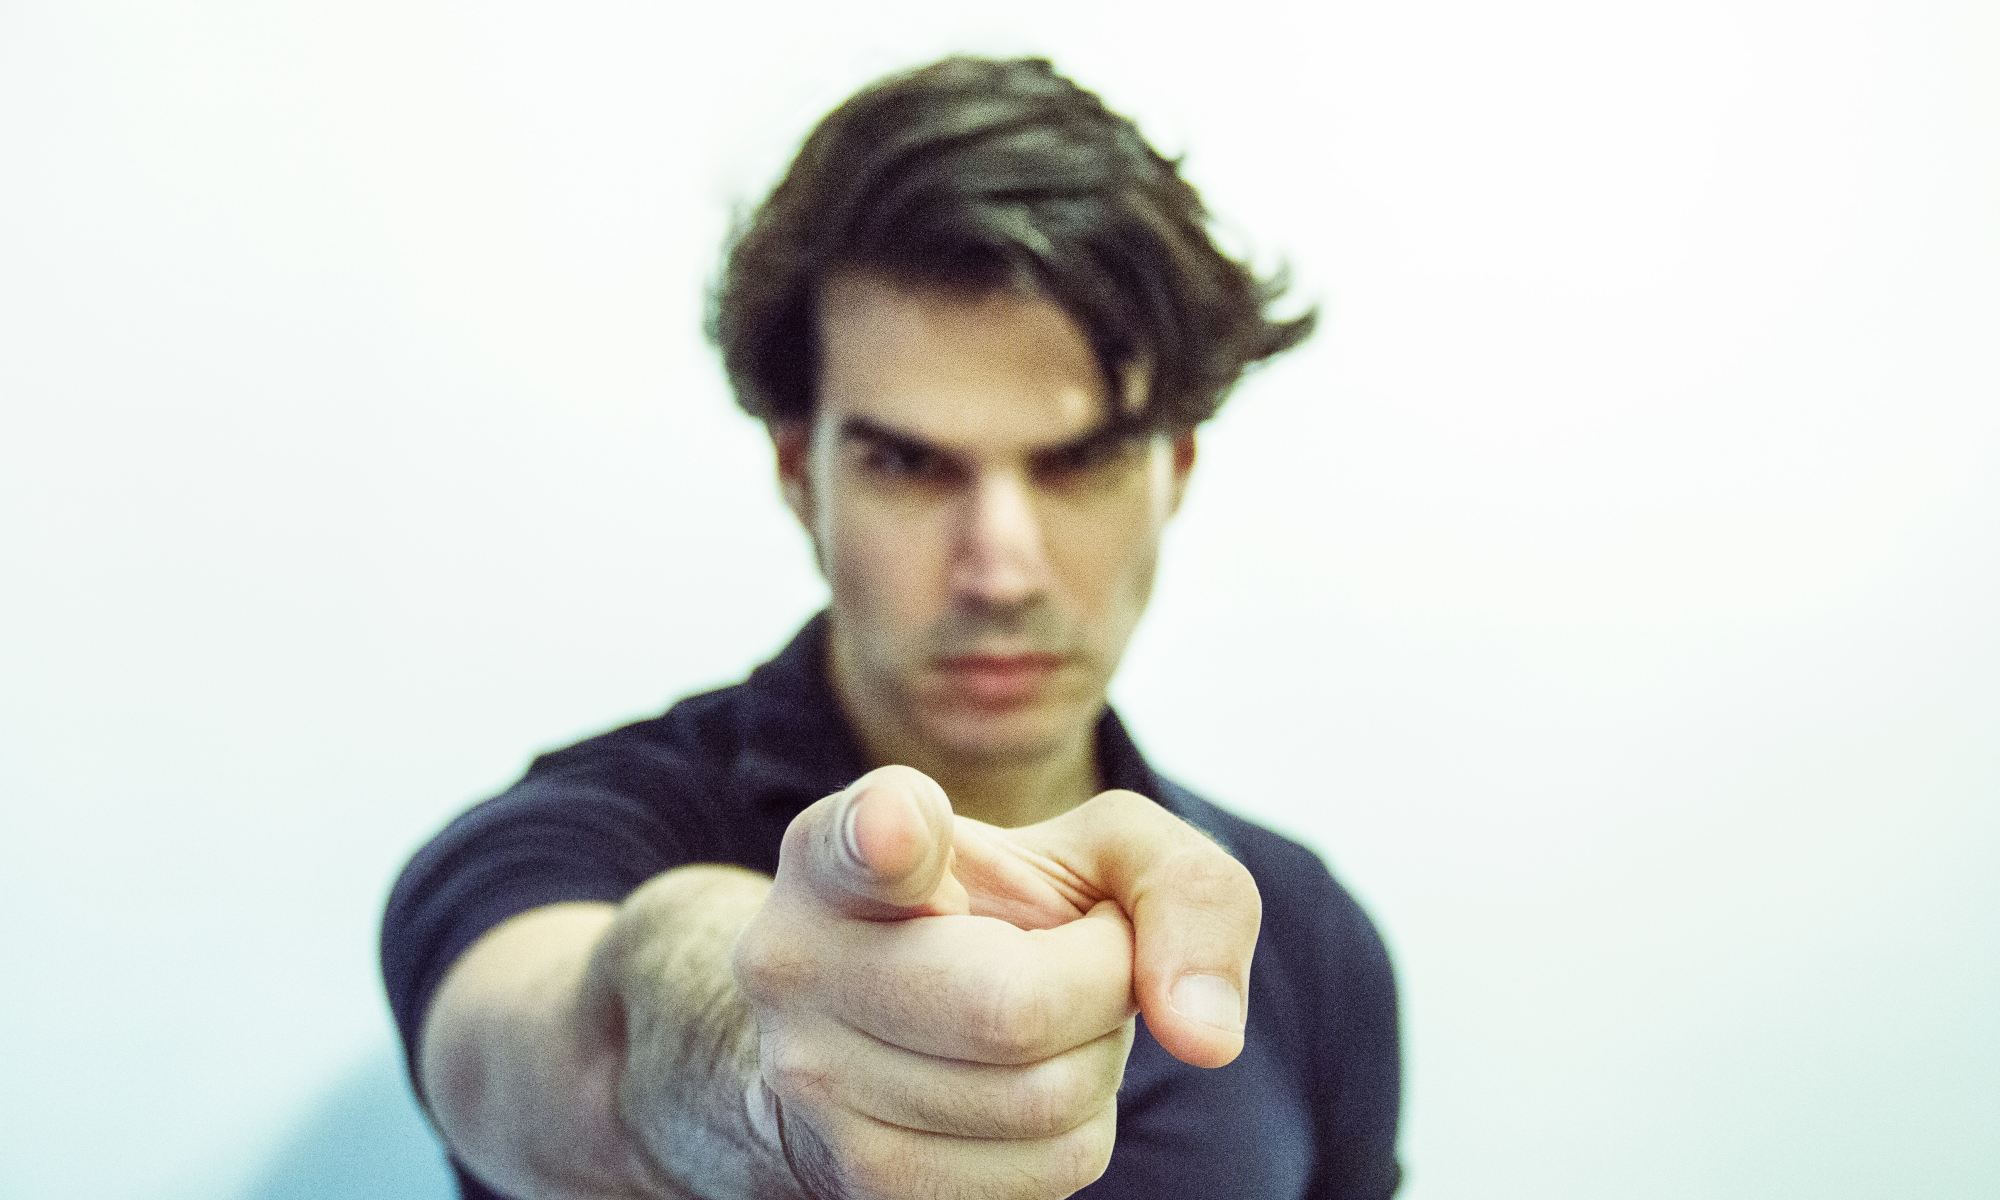 Man blaming someone else by pointing finger at them